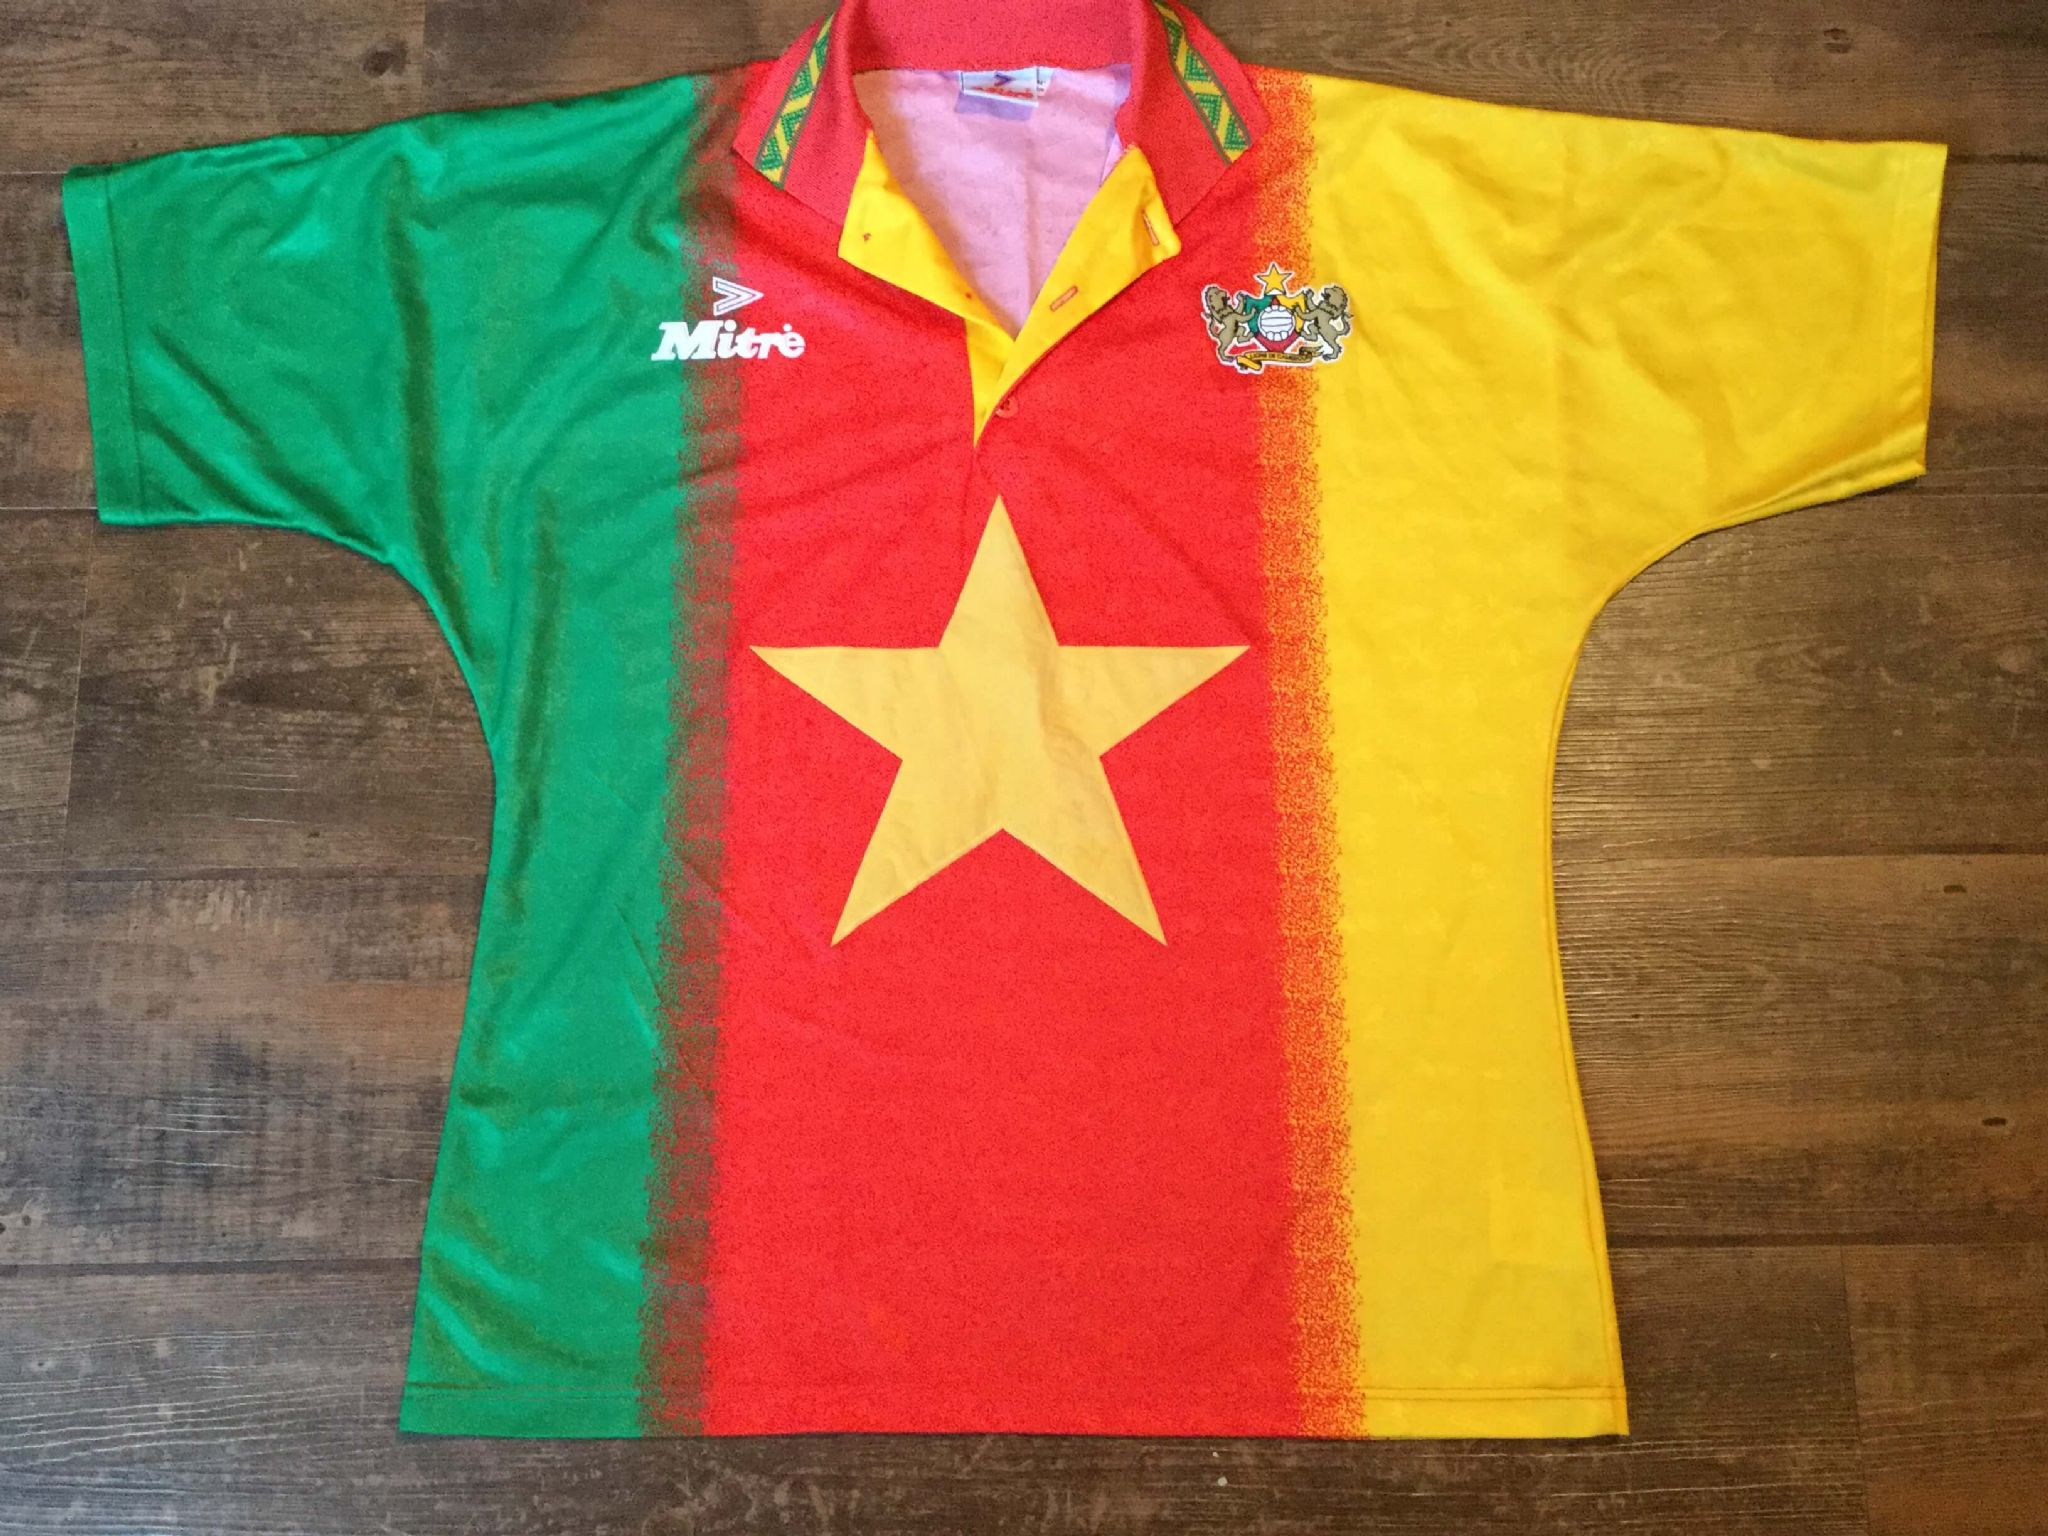 e7a81efb8 1994 1995 Cameroon Home Football Shirt Adults Large. £54.99